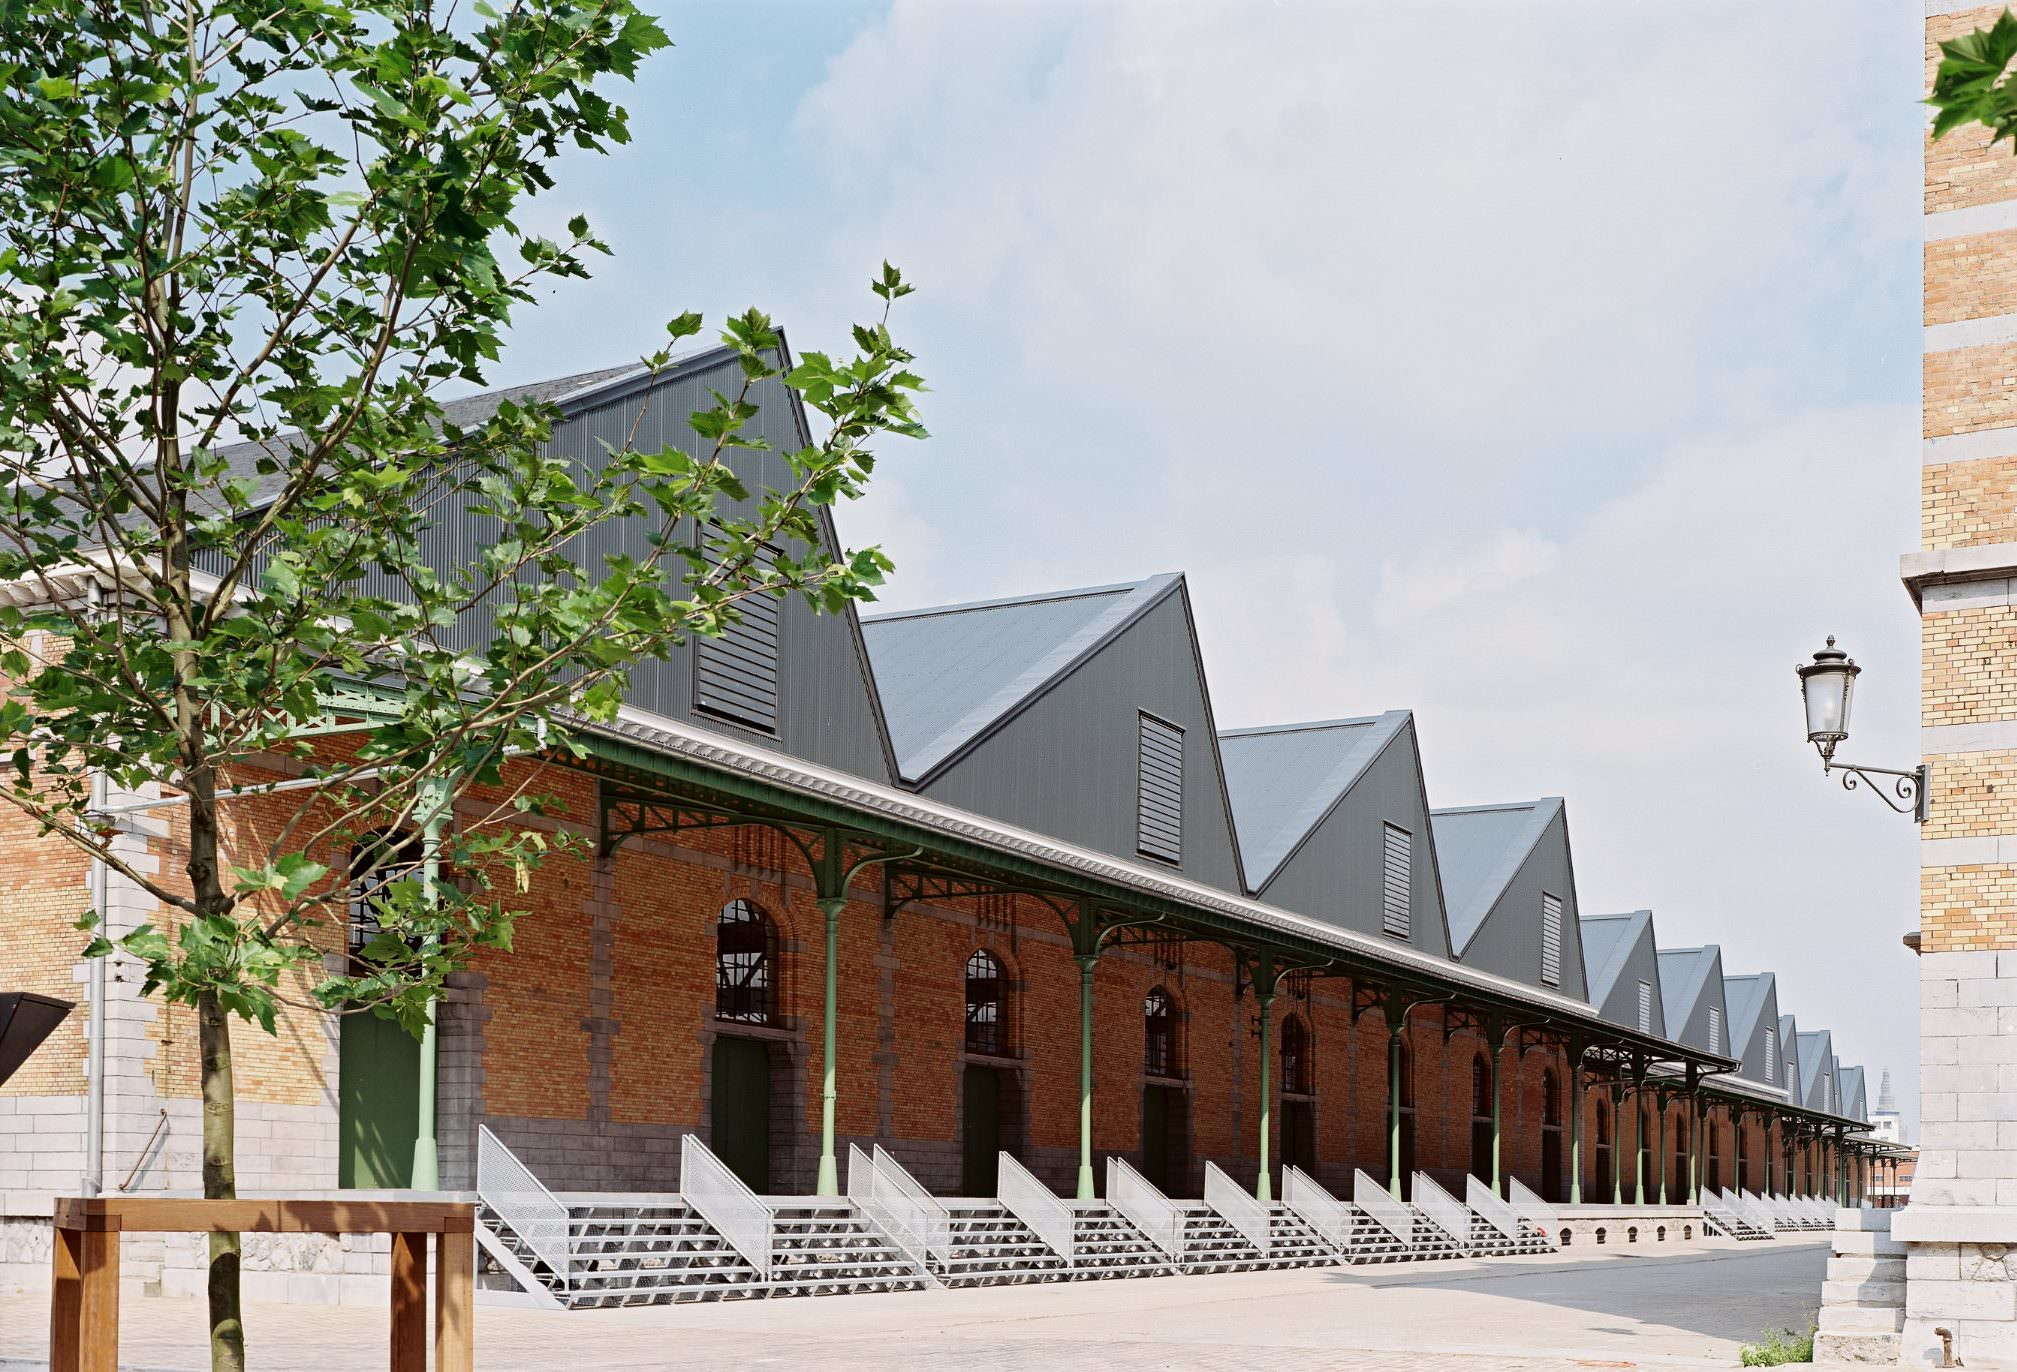 Large event venue : the Sheds - Tour & Taxis